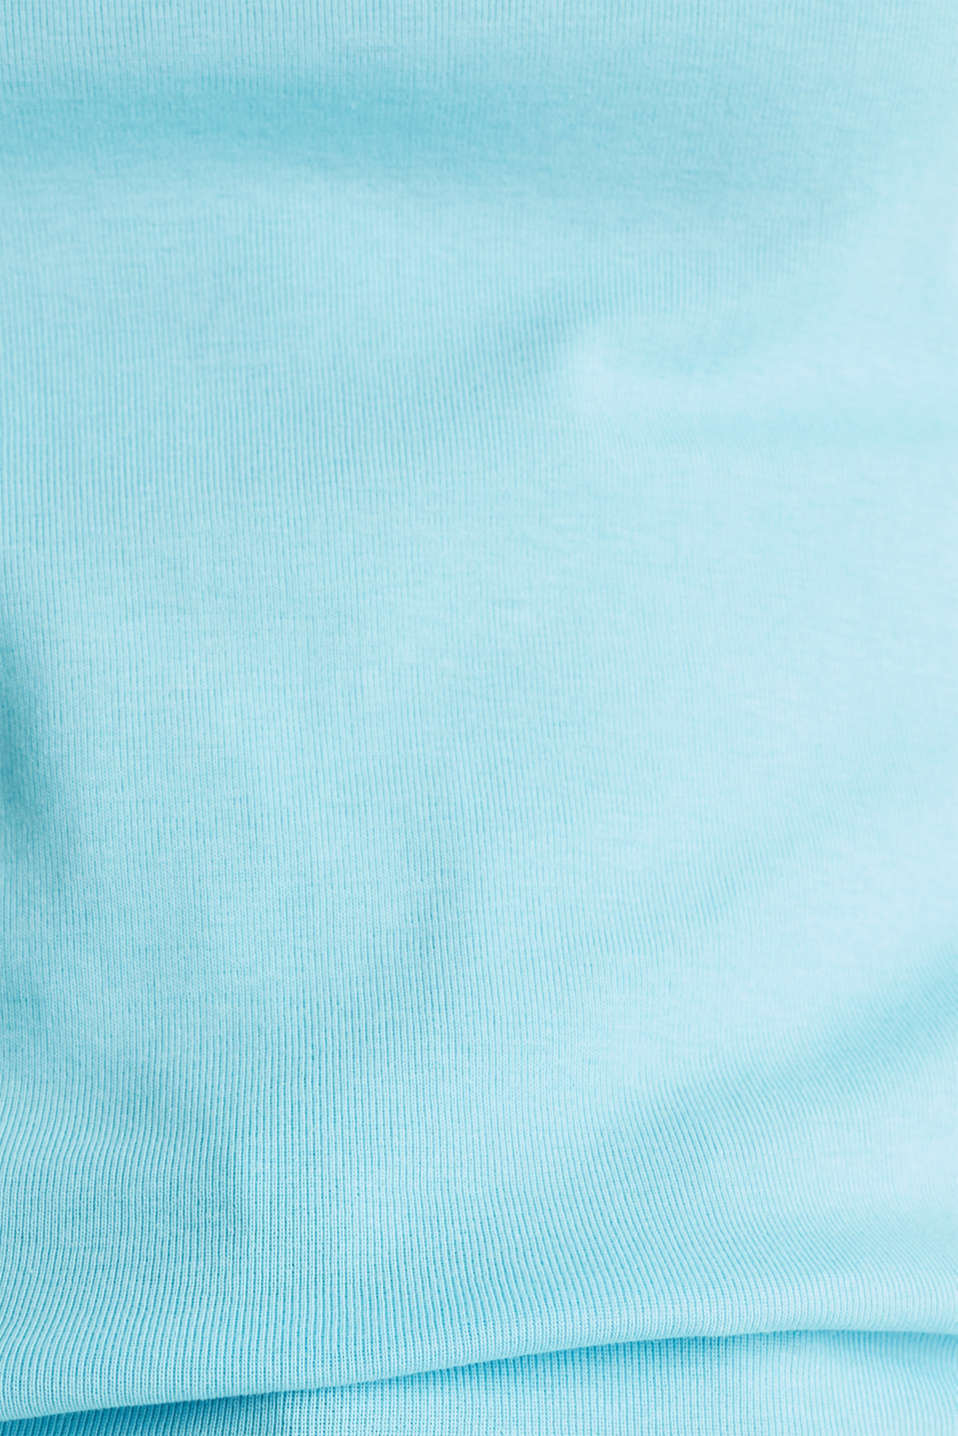 NEON top with a band collar, 100% cotton, TURQUOISE 4, detail image number 4